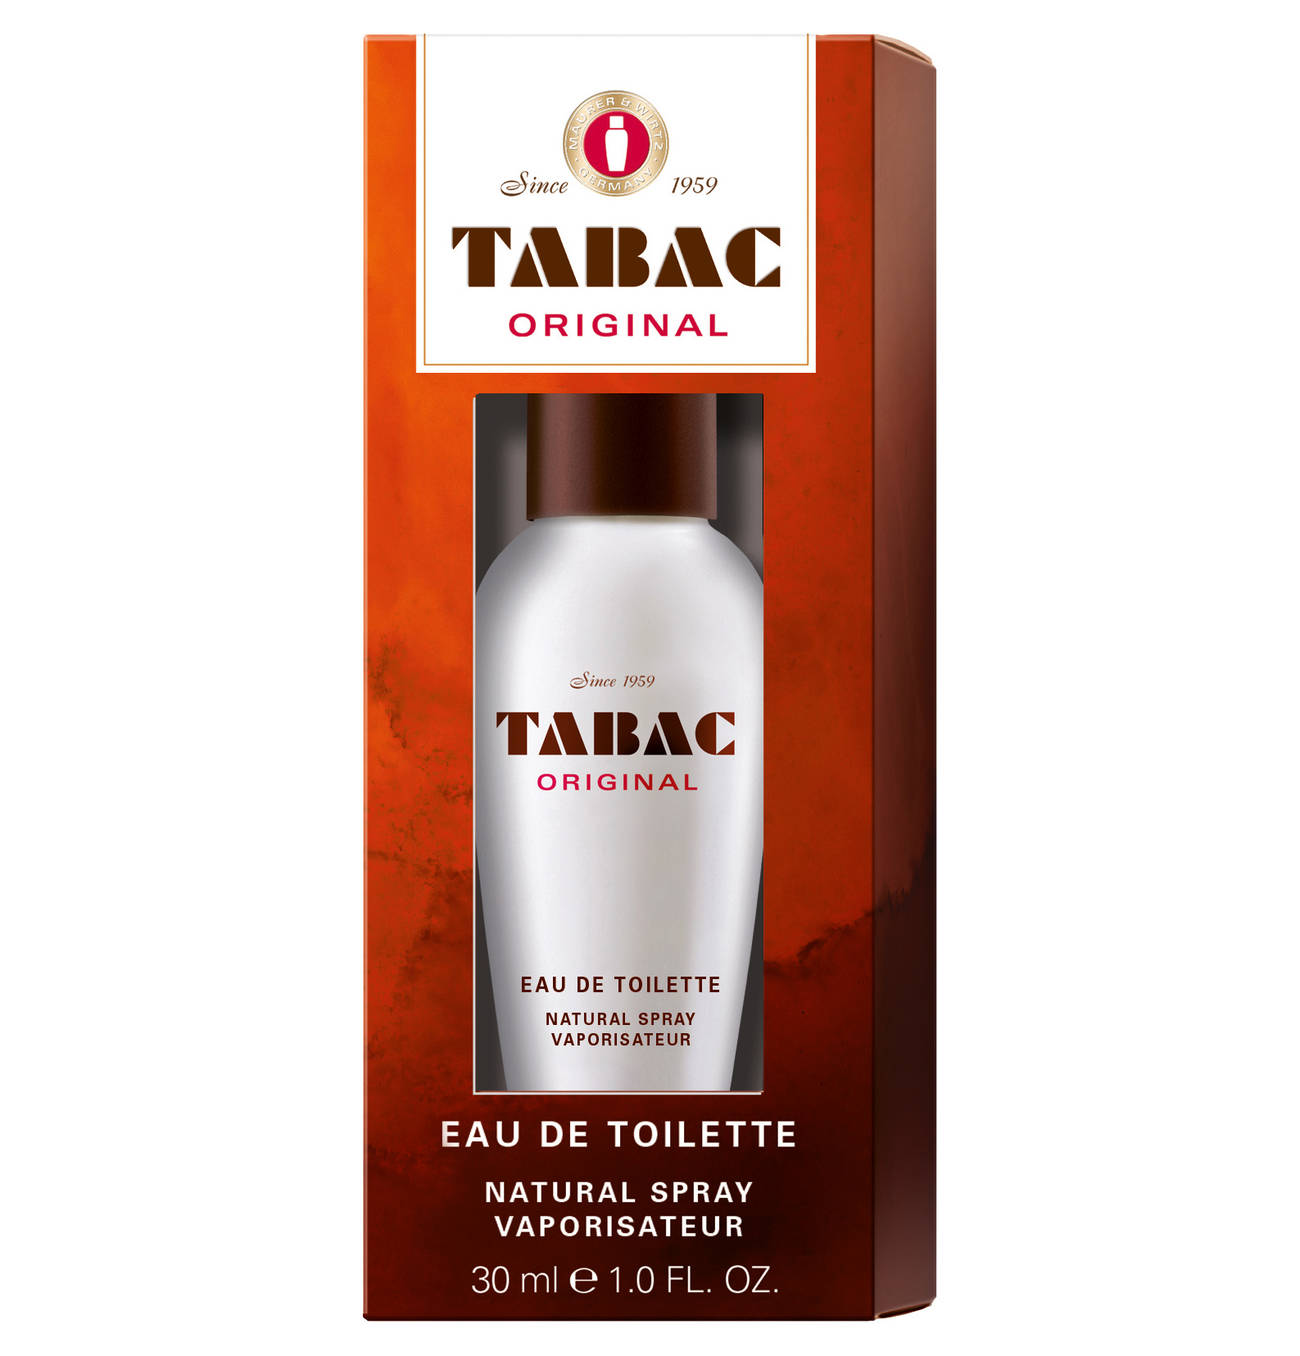 TABAC ORIGINAL EDT 30 ML